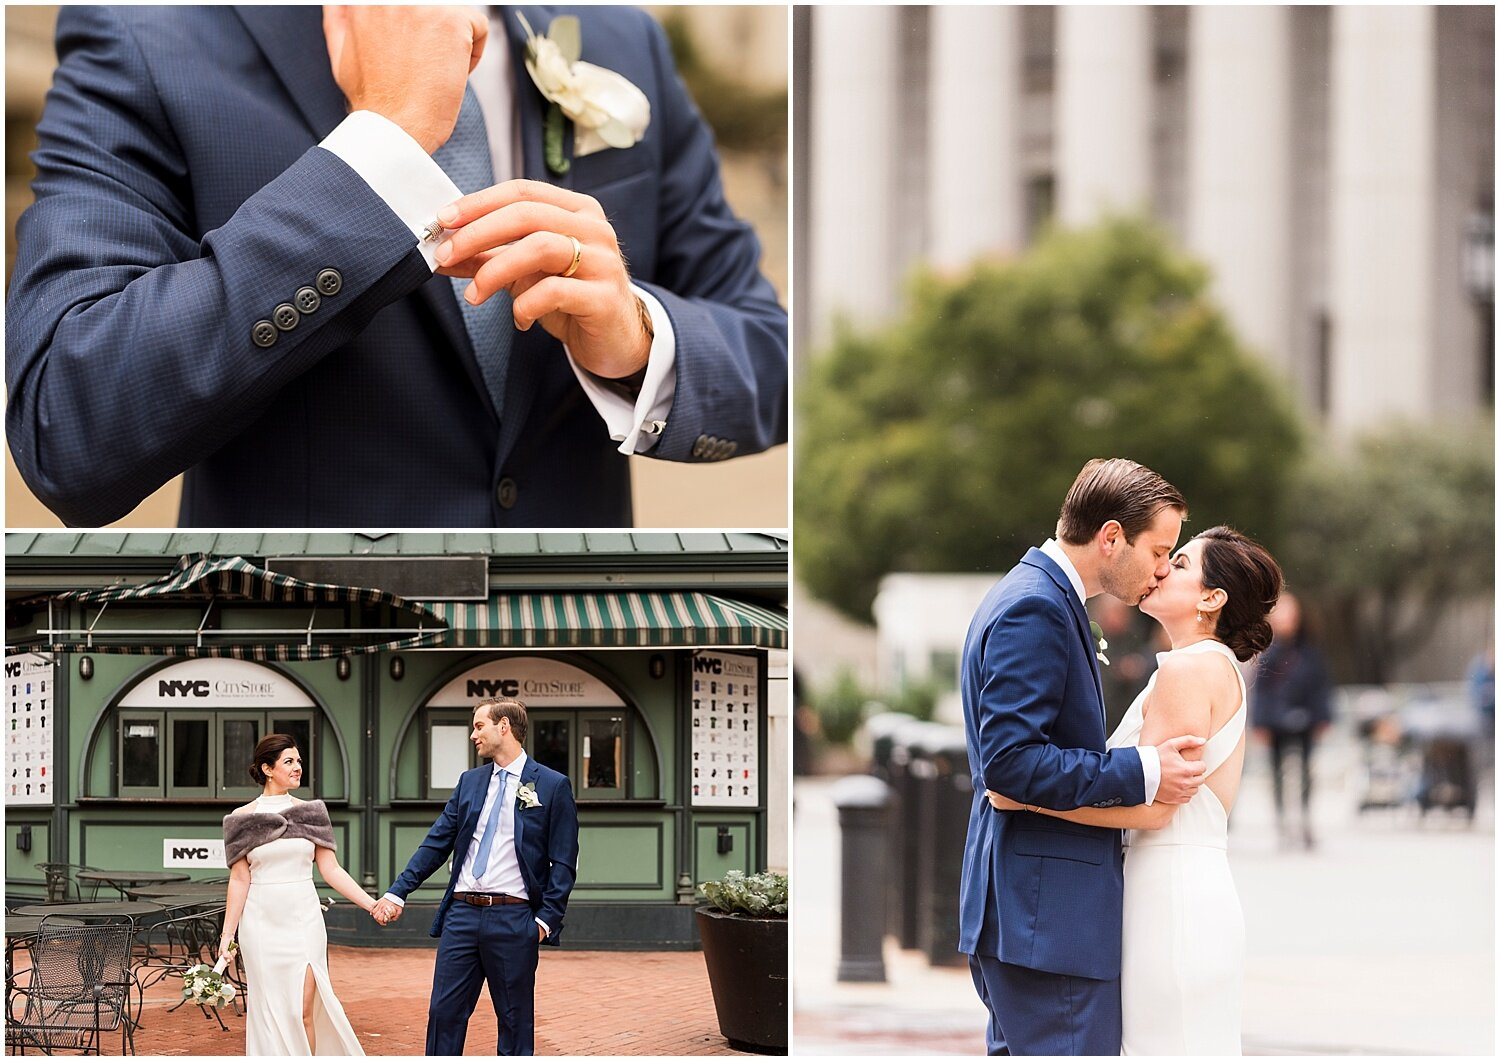 NYC-City-Hall-Courthouse-Elopement-Photographer-Apollo-Fields-030.jpg